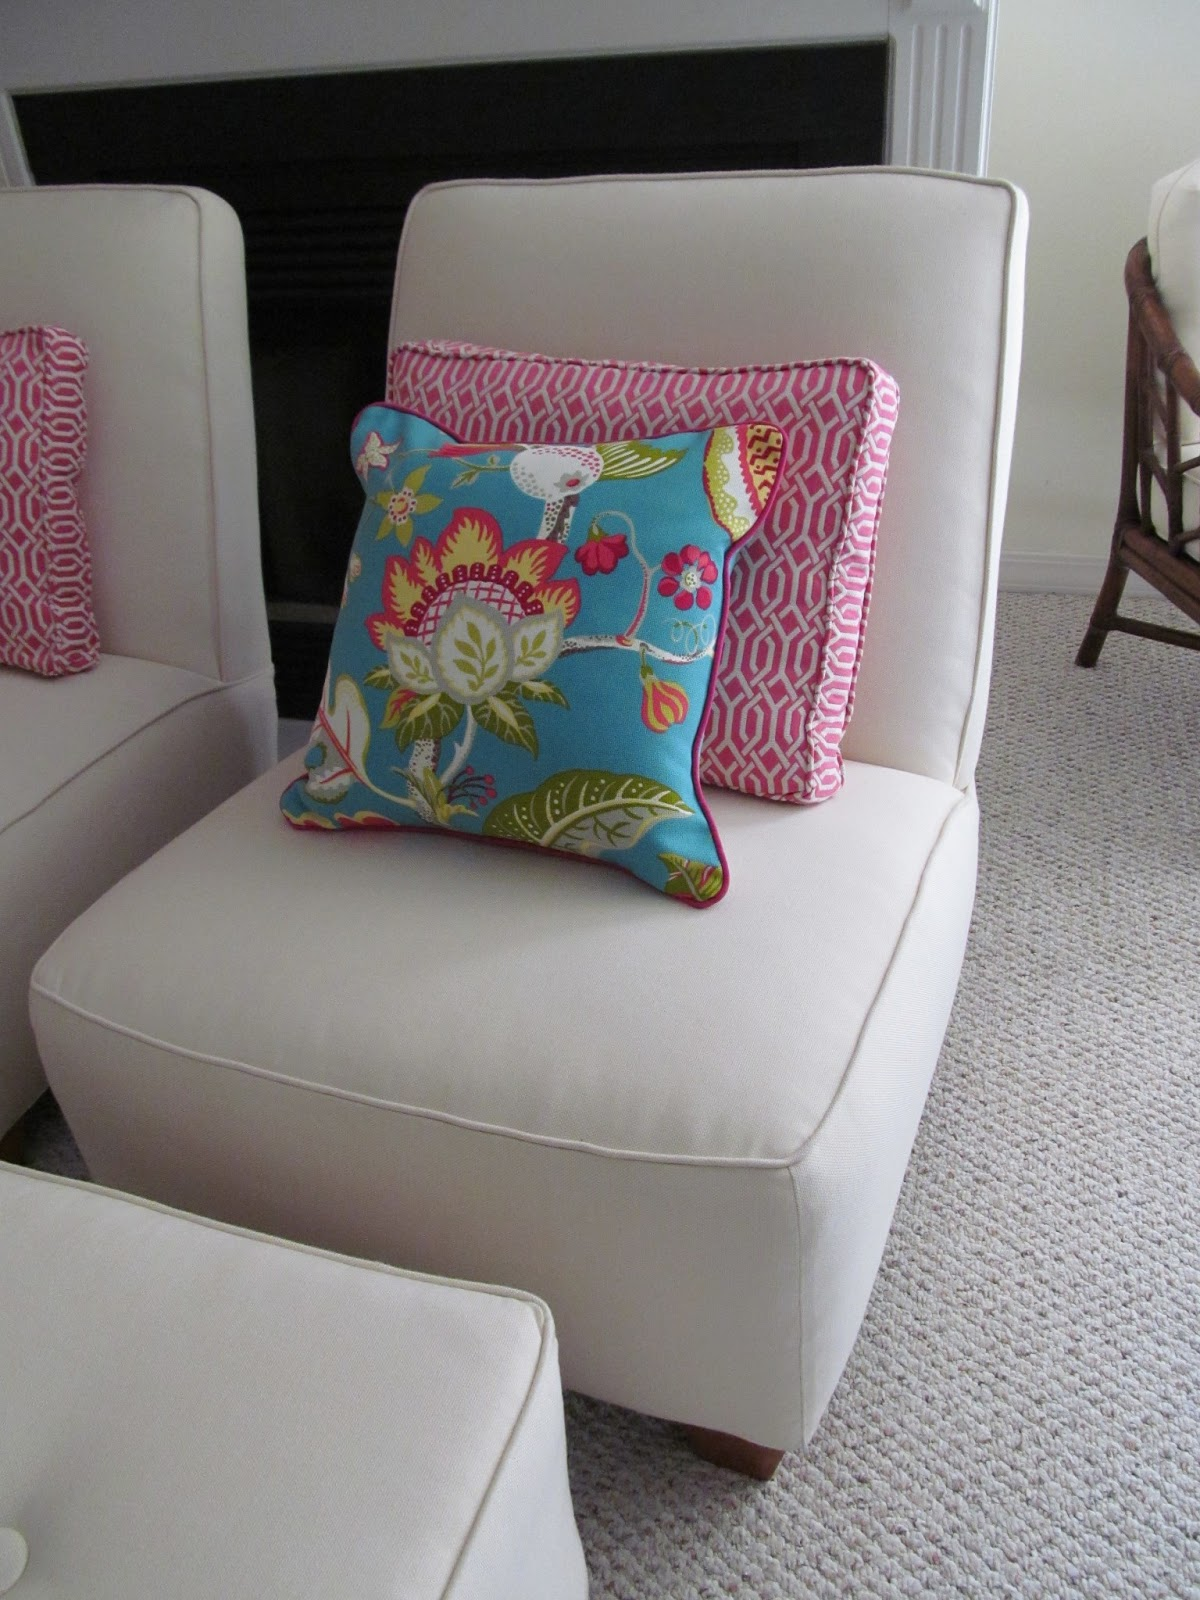 Sunbrella Fabric Facelift with Custom pillows #upholstery #slipcovers #sunbrellafabric #whiteslipcovers #kippiathome